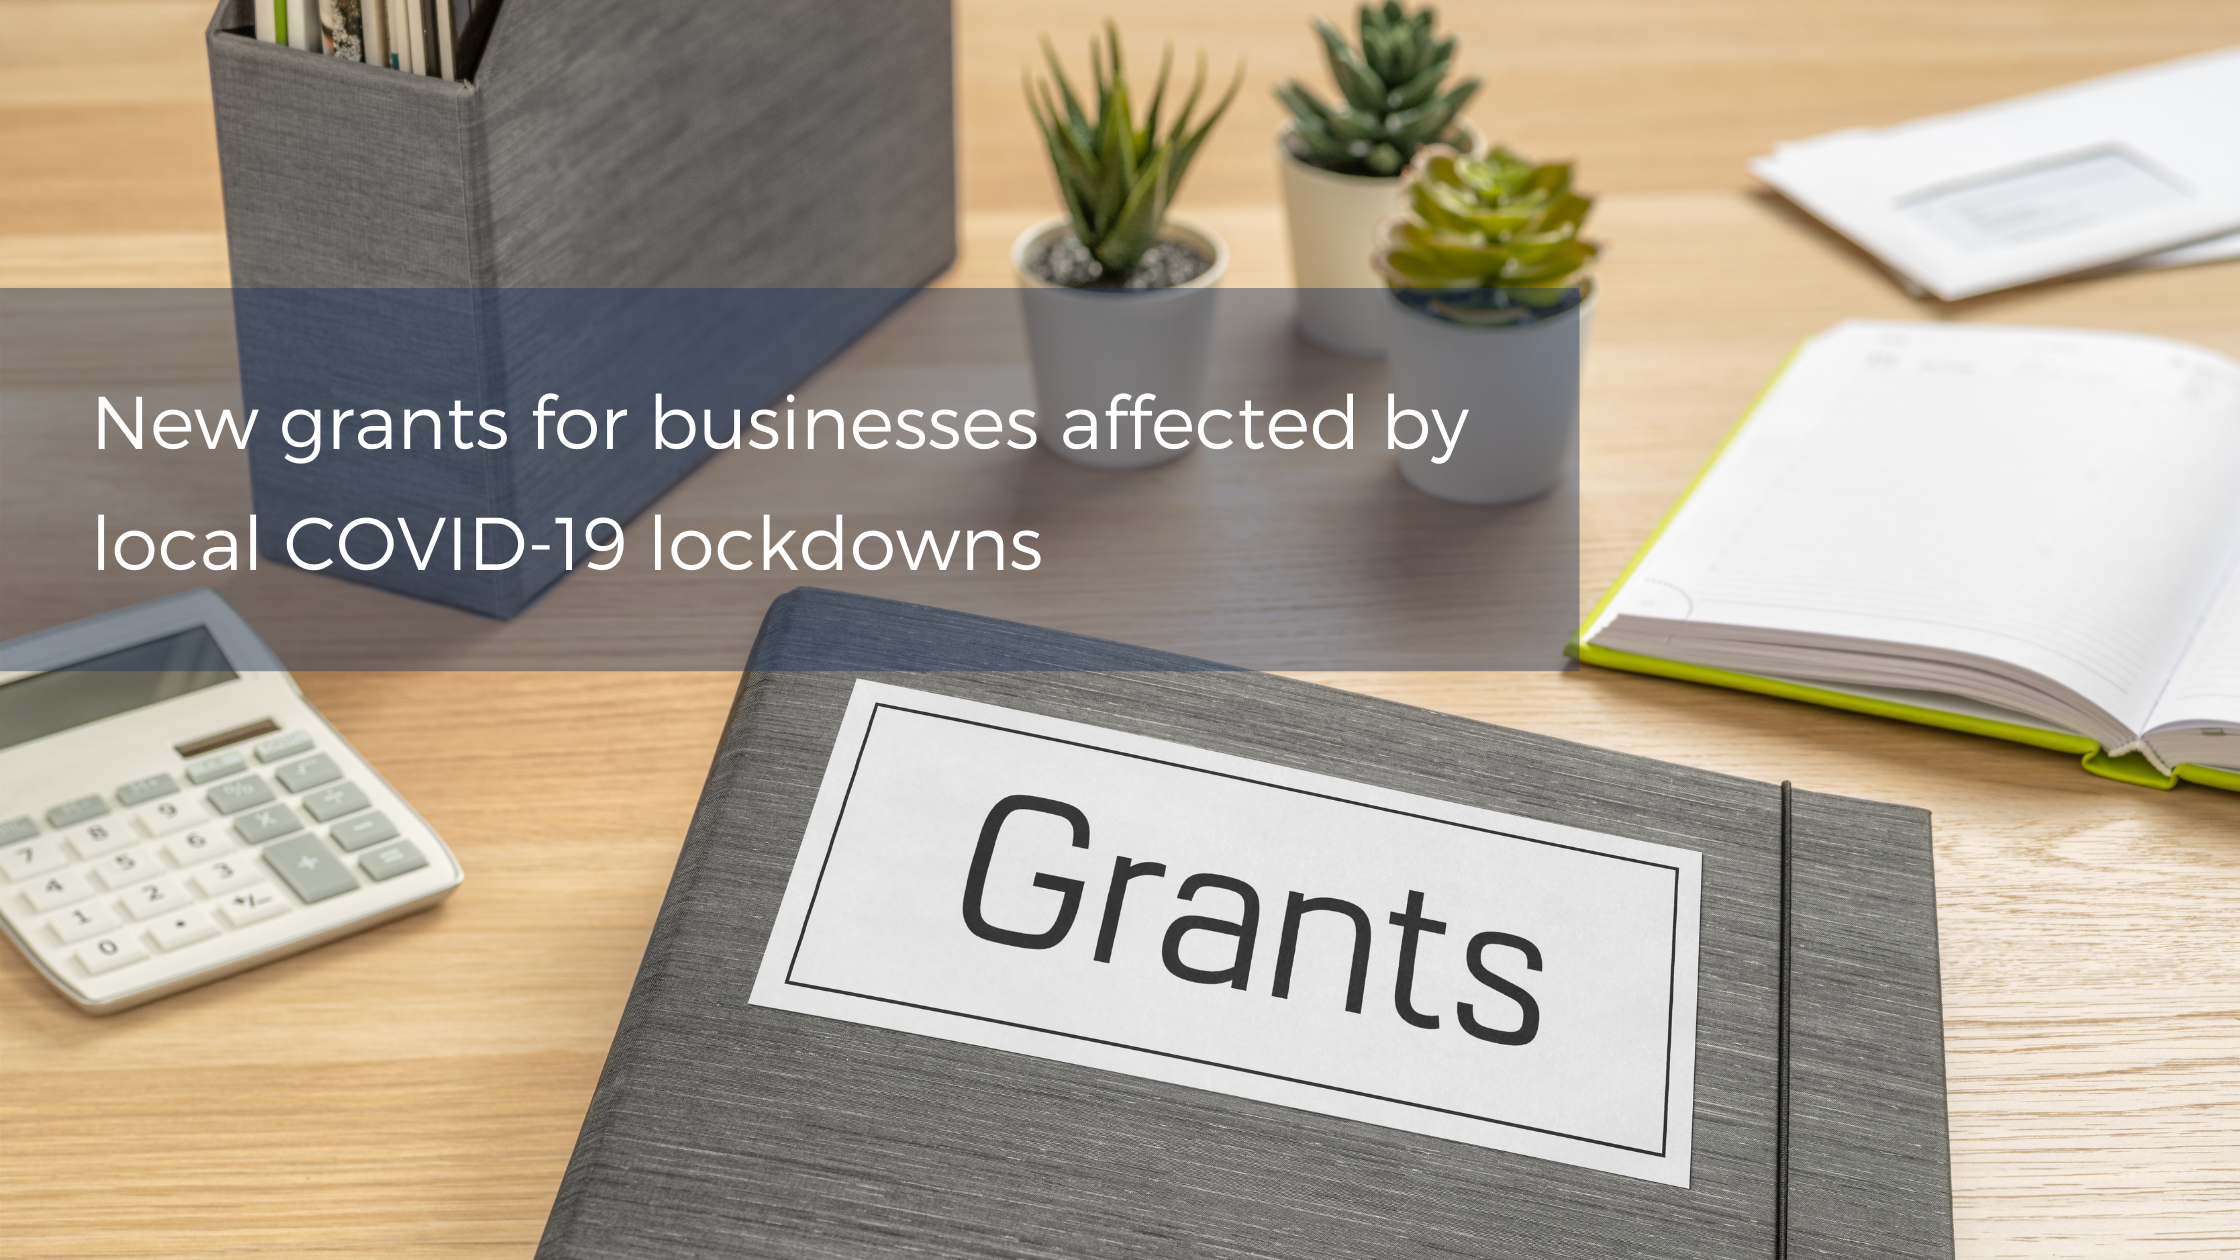 Grants For Businesses Affected By Local Covid-19 Lockdowns